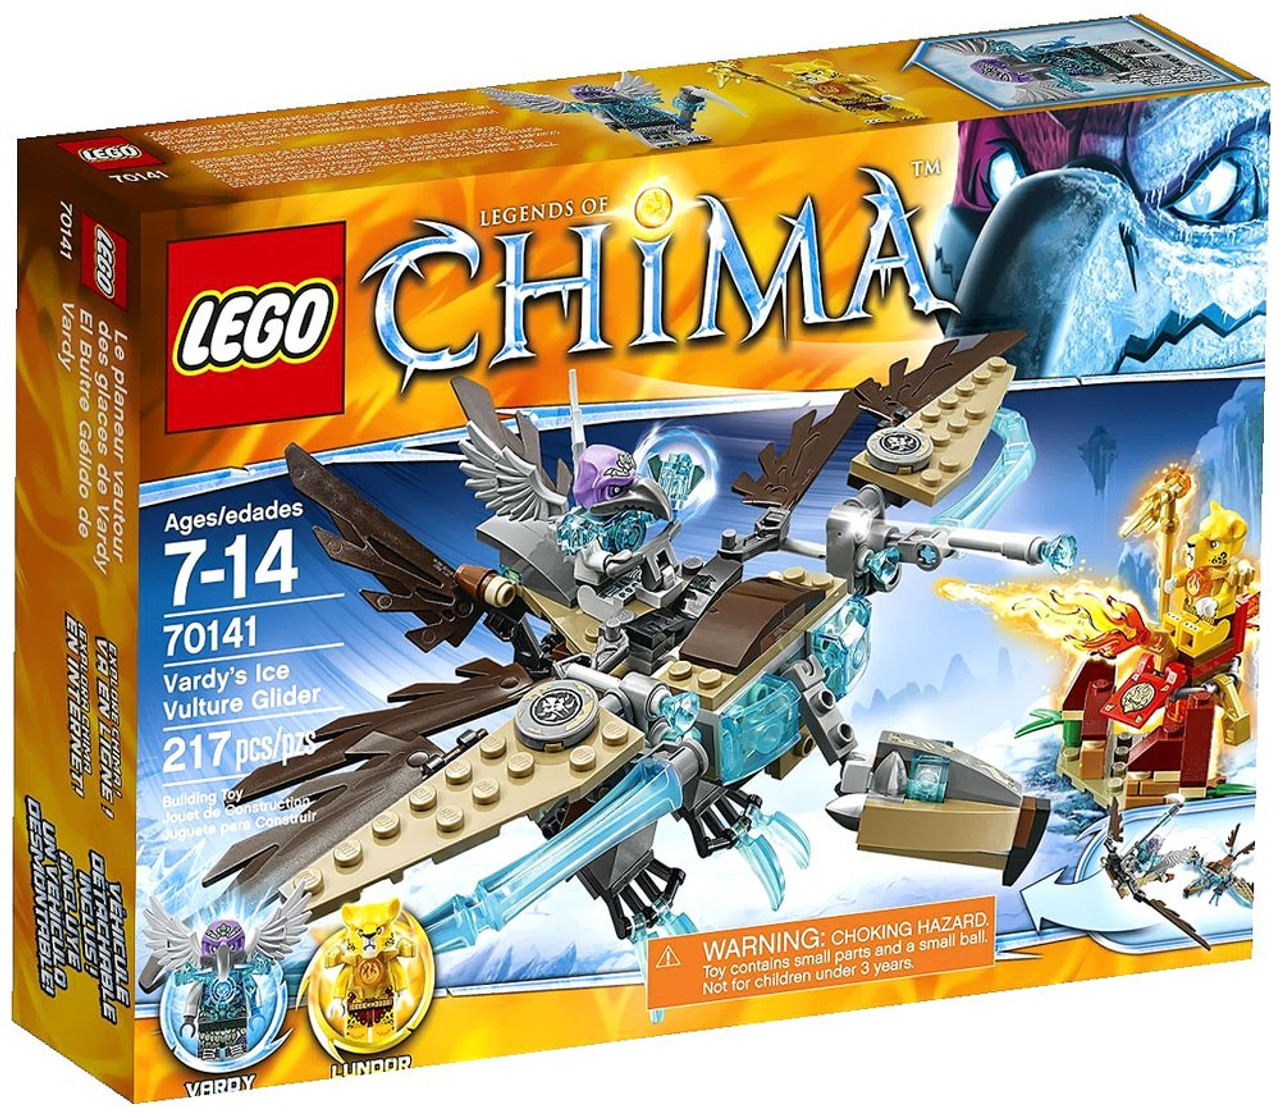 LEGO Legends of Chima Vardy's Ice Vulture Glider Set #70141